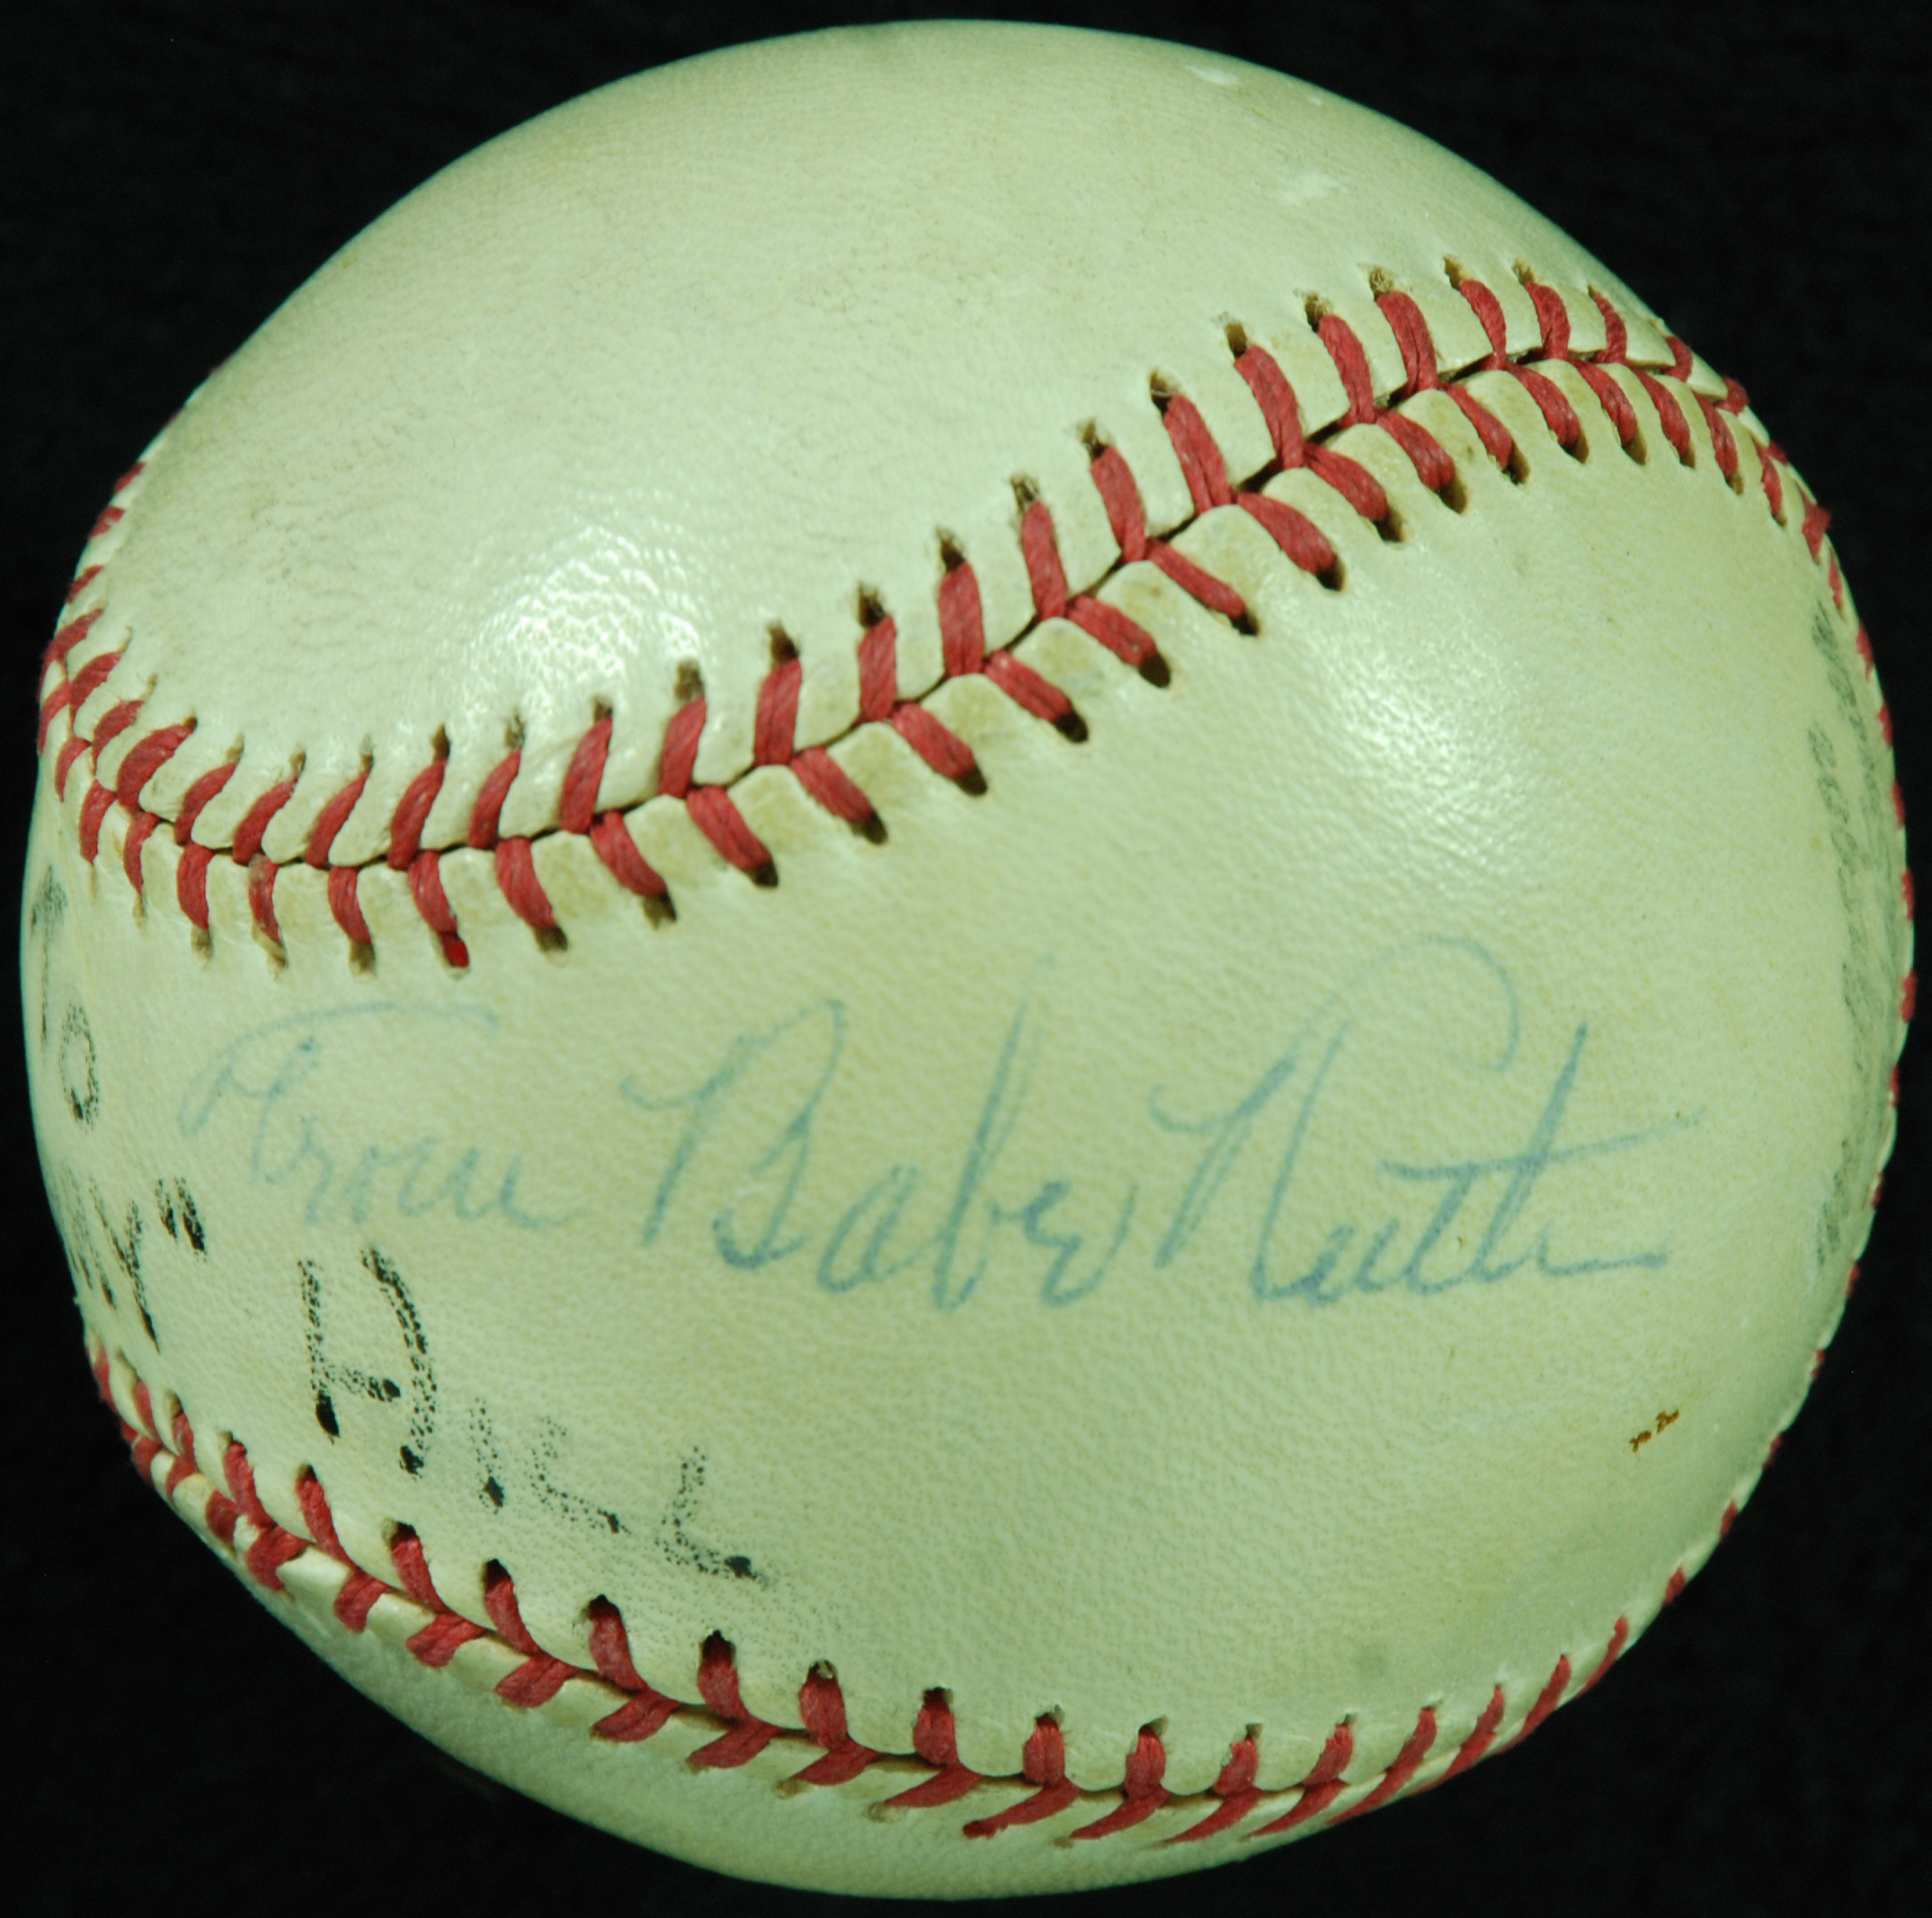 Babe Ruth signed ball Collect Auctions